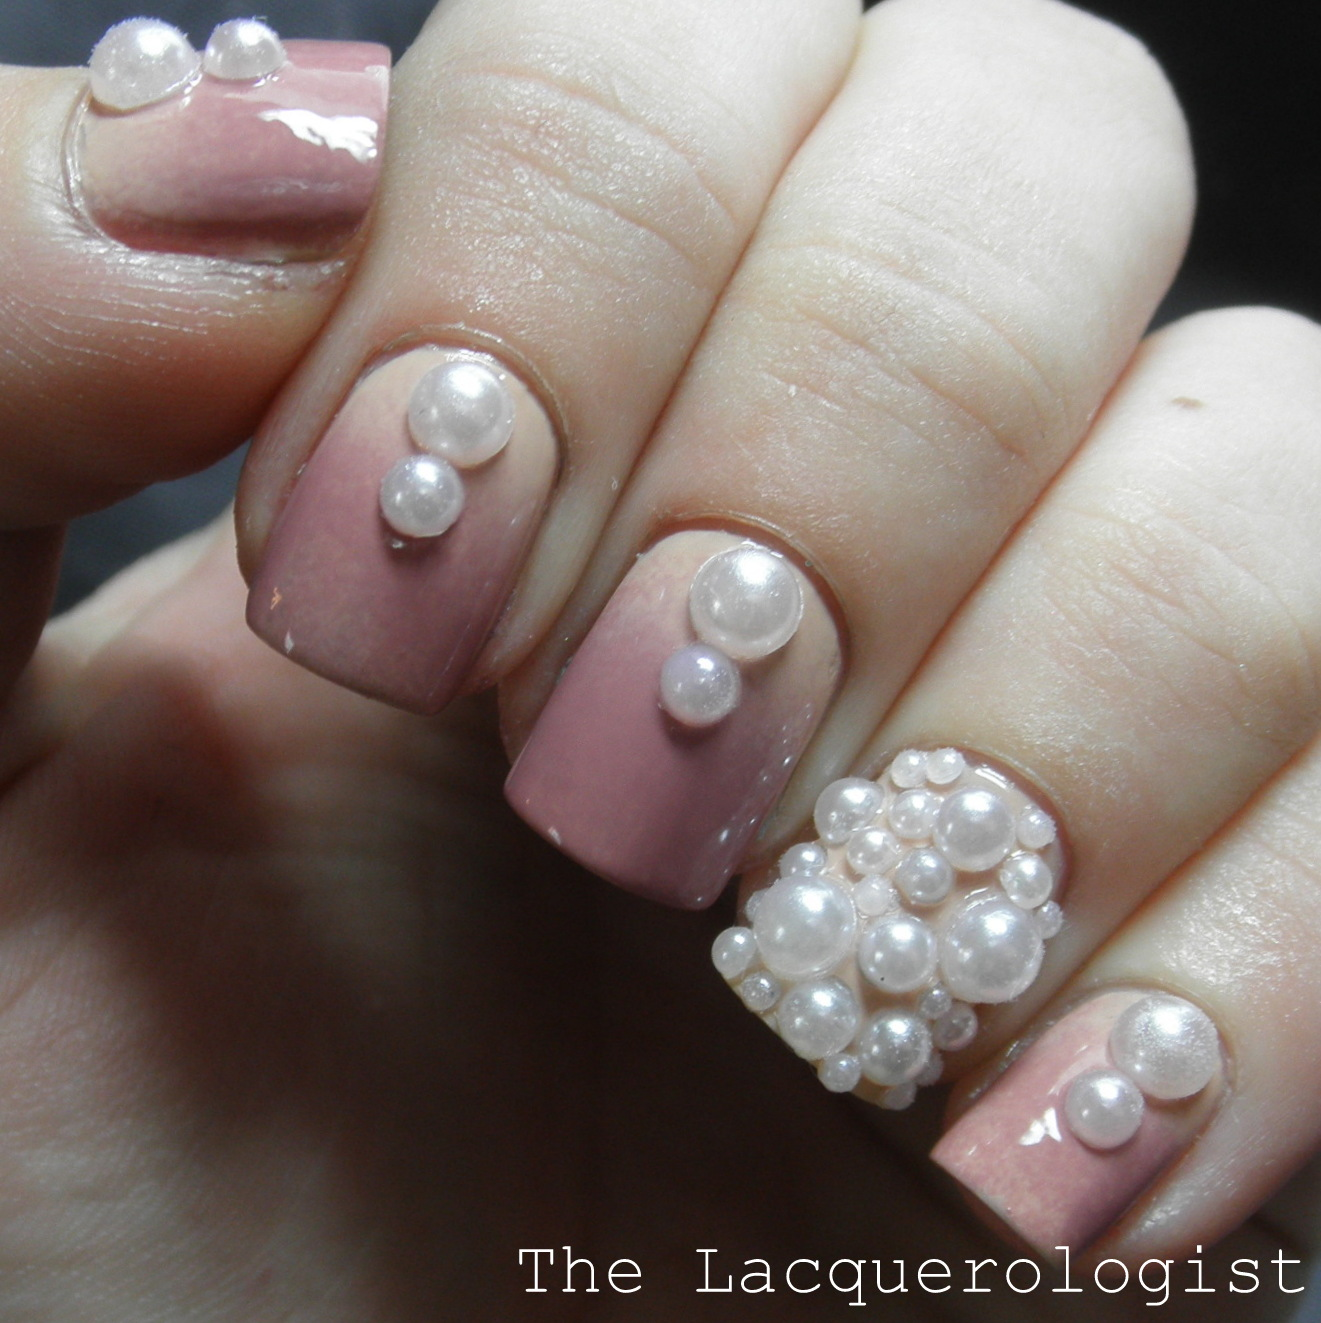 When Tmart Contacted Me Of Course I Chose A Nail Art Item To Review Let S Take Look At The Manicure Created With These Pearls